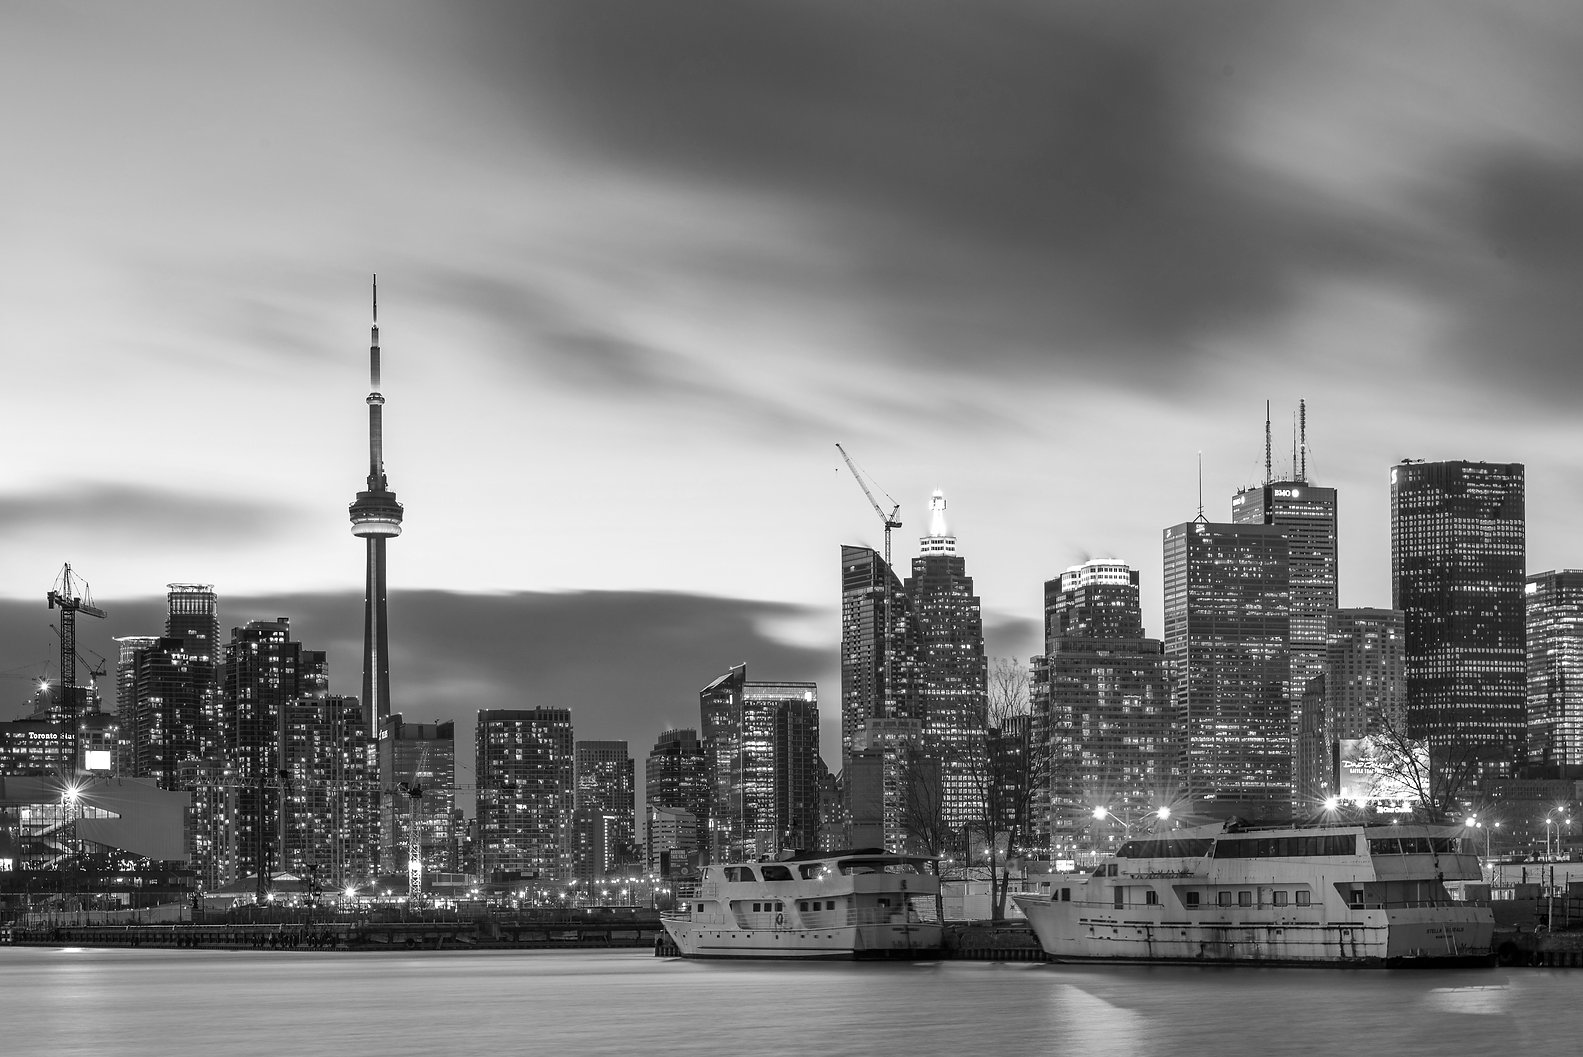 Toronto skyline with boats in he foreground